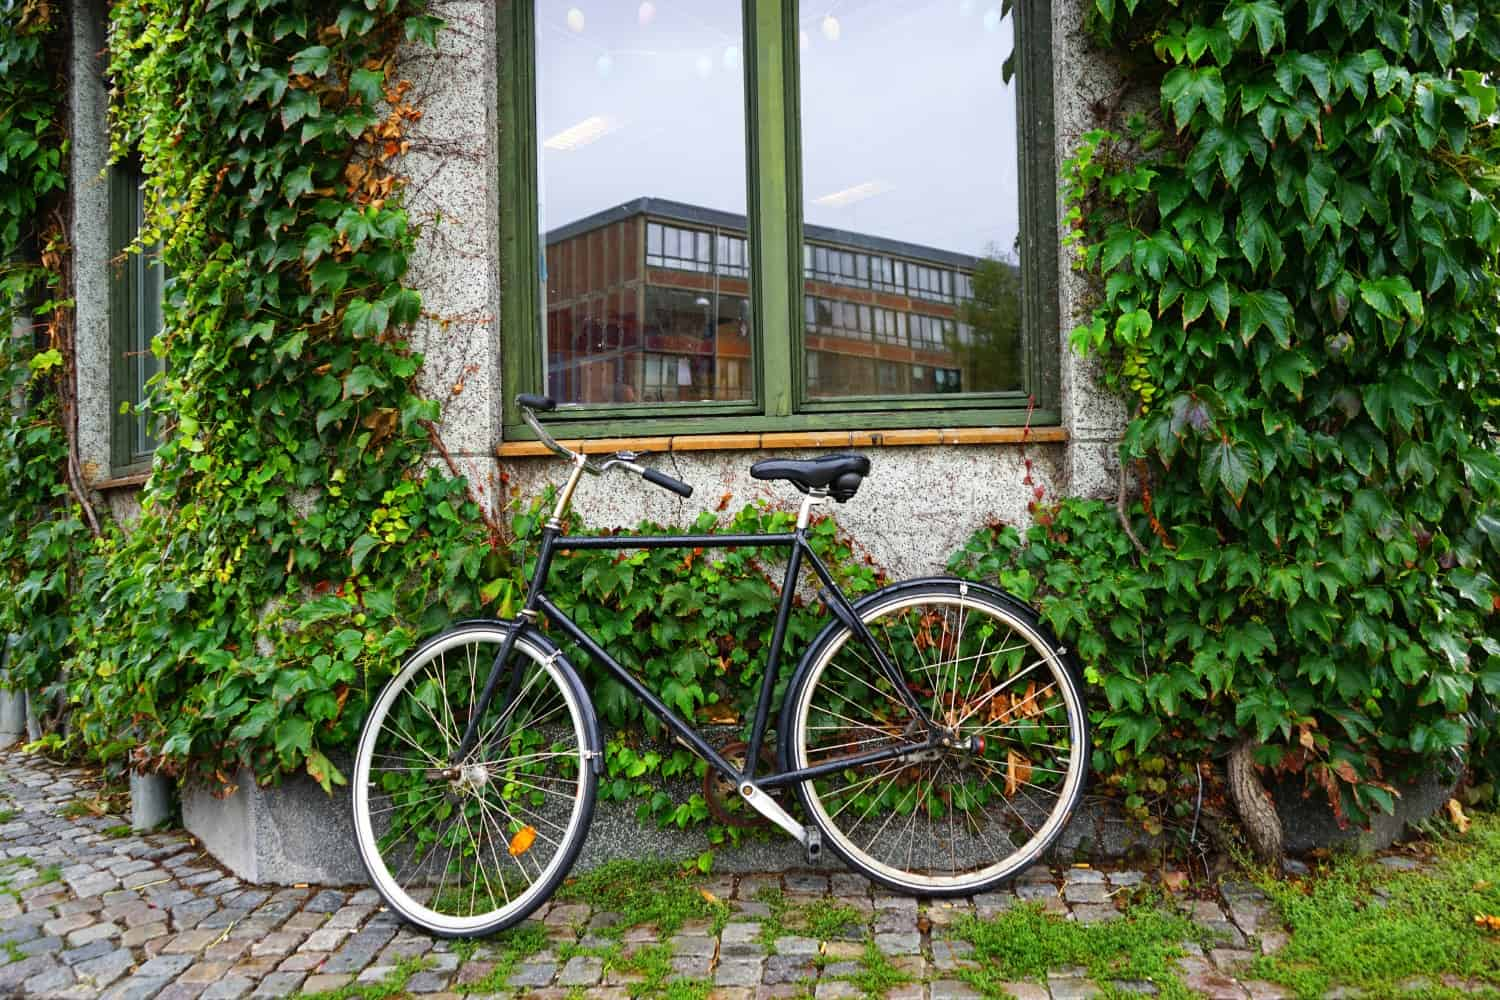 Black bicycle in Copenhagen